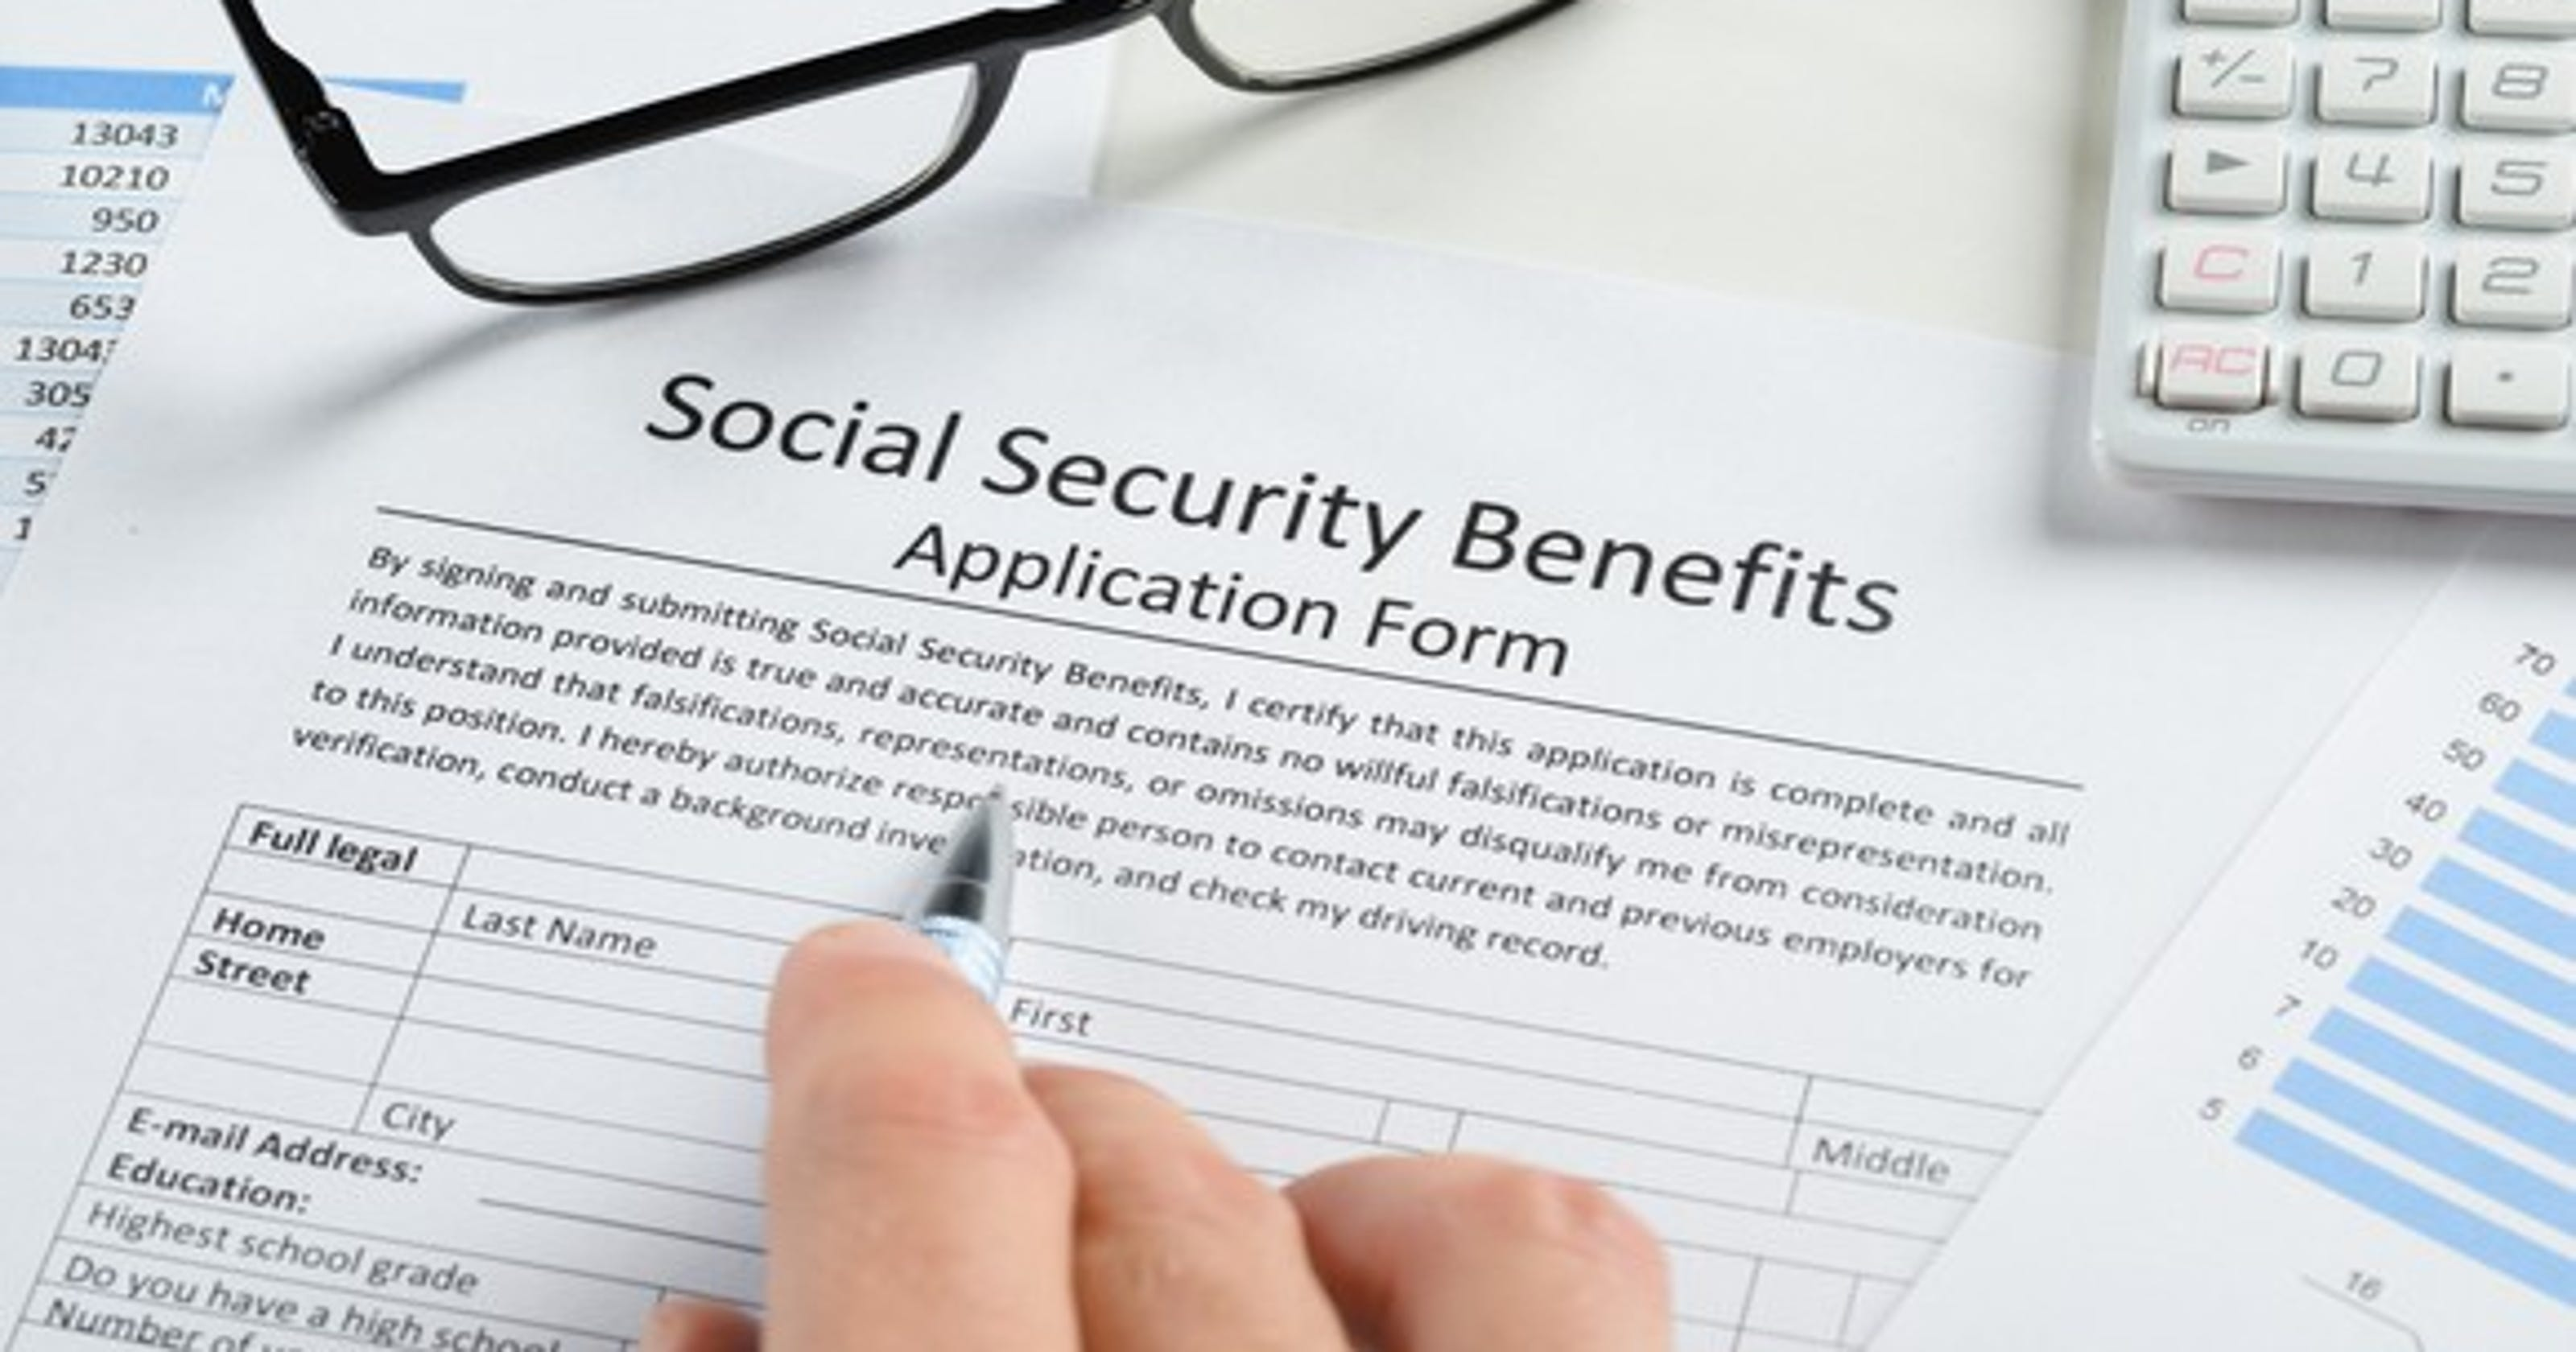 10 states with the highest average social security retirement benefit